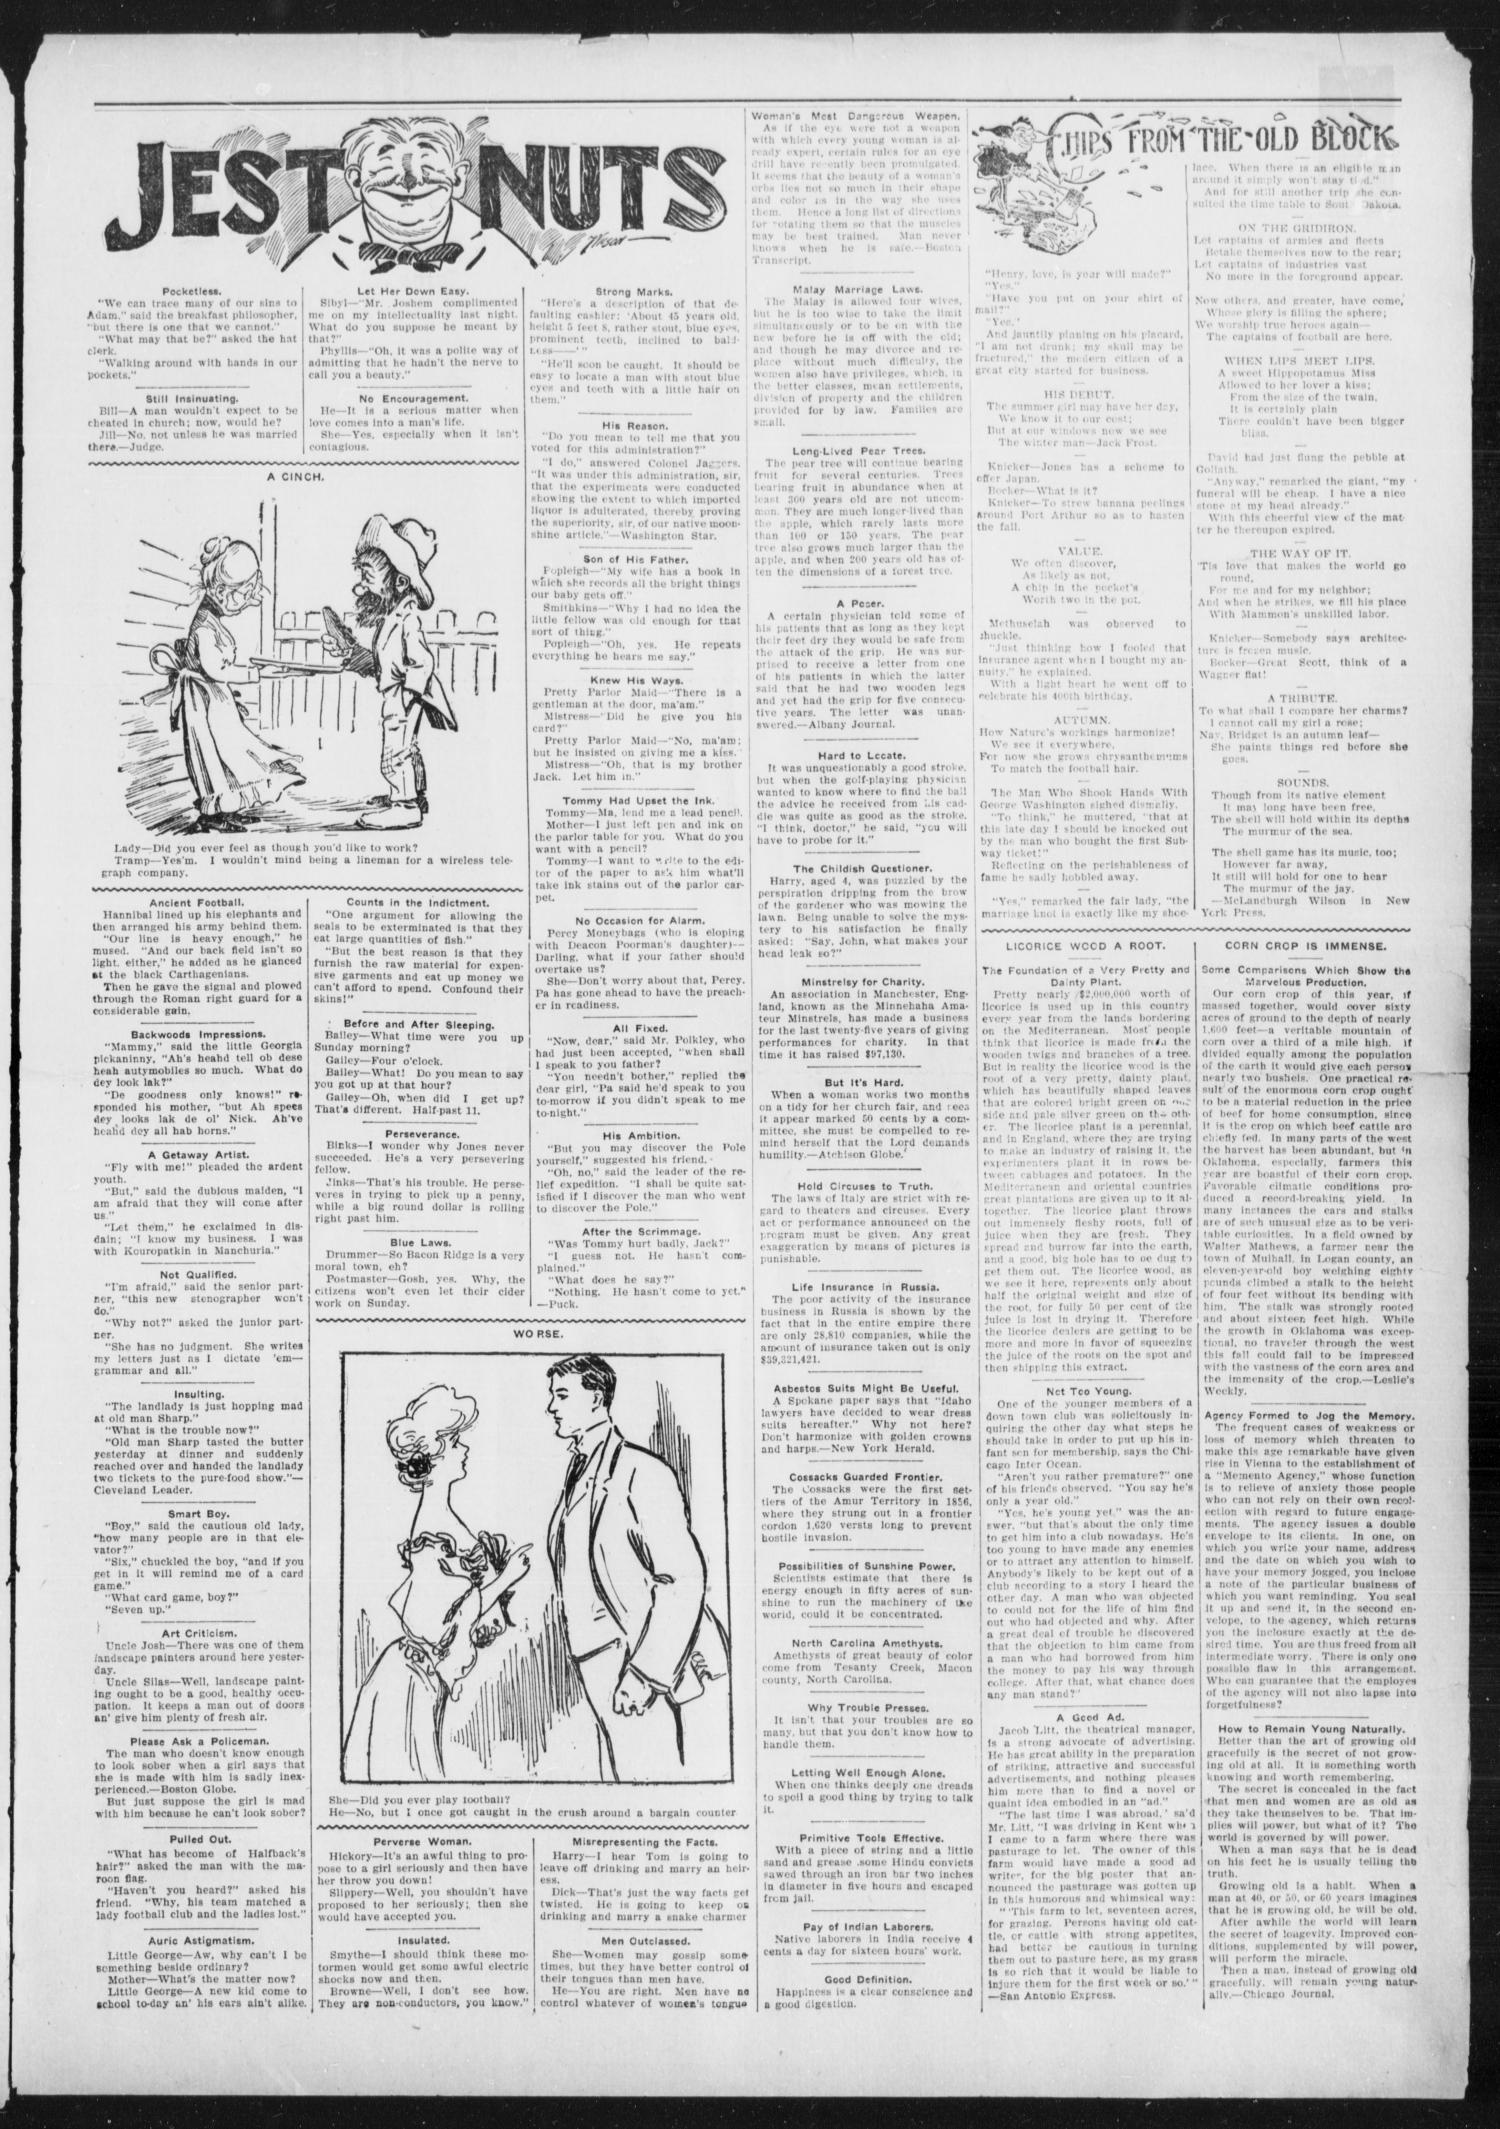 Anadarko Daily Democrat. (Anadarko, Okla.), Vol. 4, No. 87, Ed. 1, Friday, December 9, 1904                                                                                                      [Sequence #]: 3 of 4